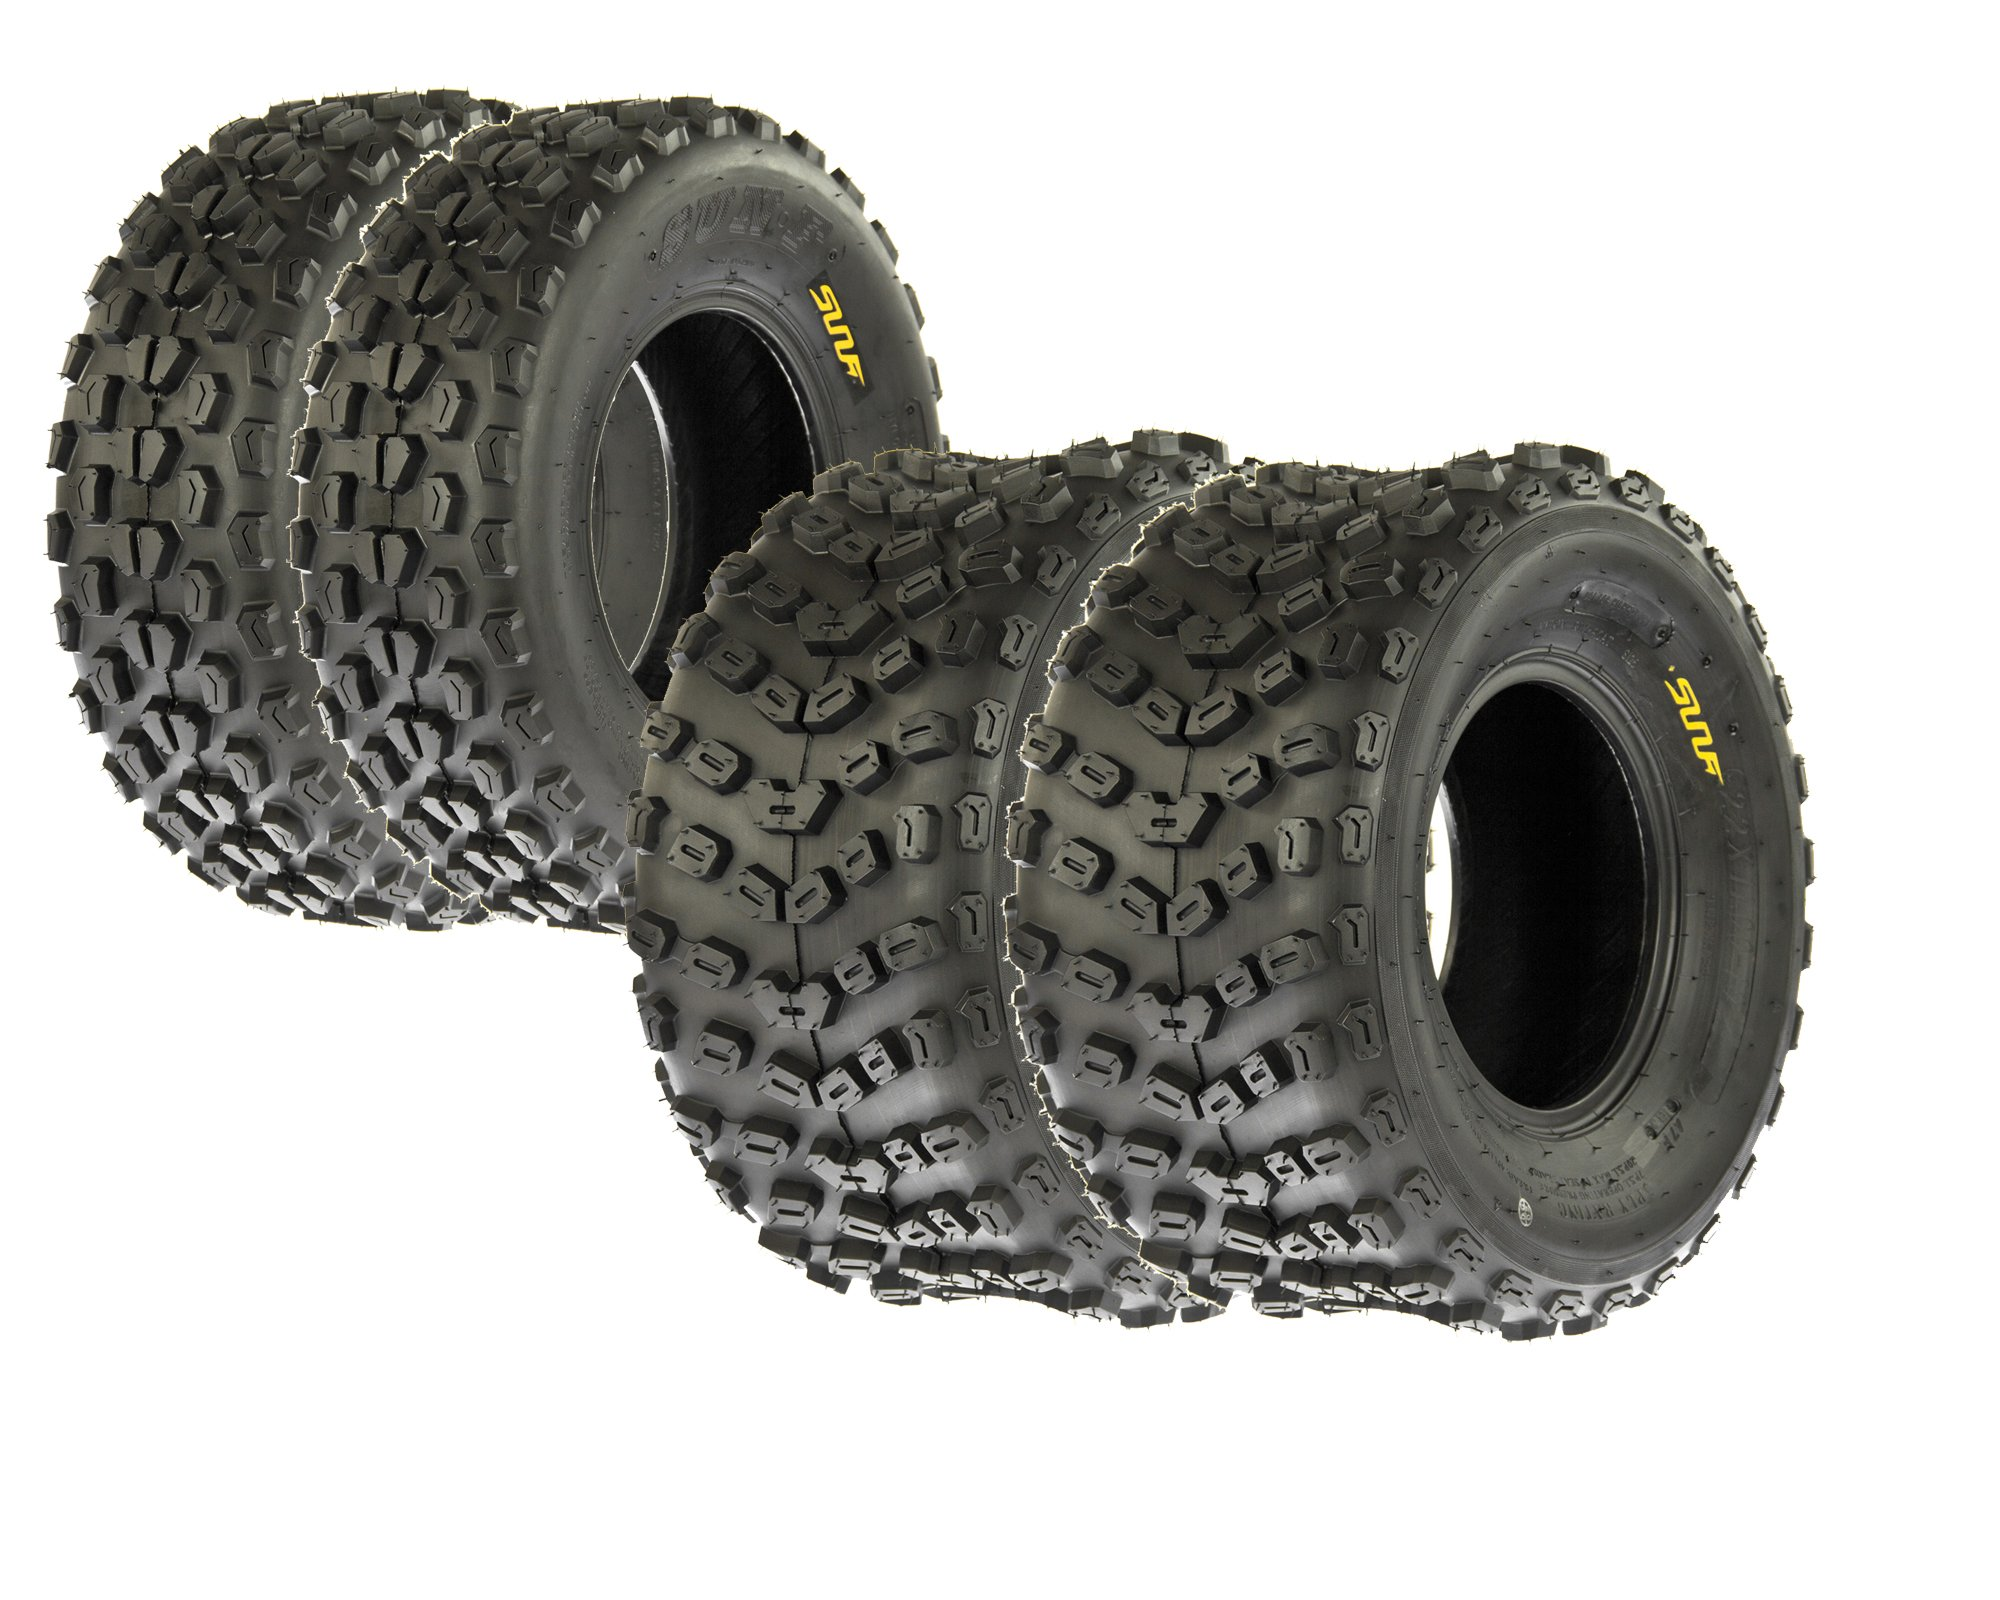 SunF Full Set Sport ATV Tubeless Tires 22x7-10 A017 Front & 22x11-10 A005 Rear, 4 Ply